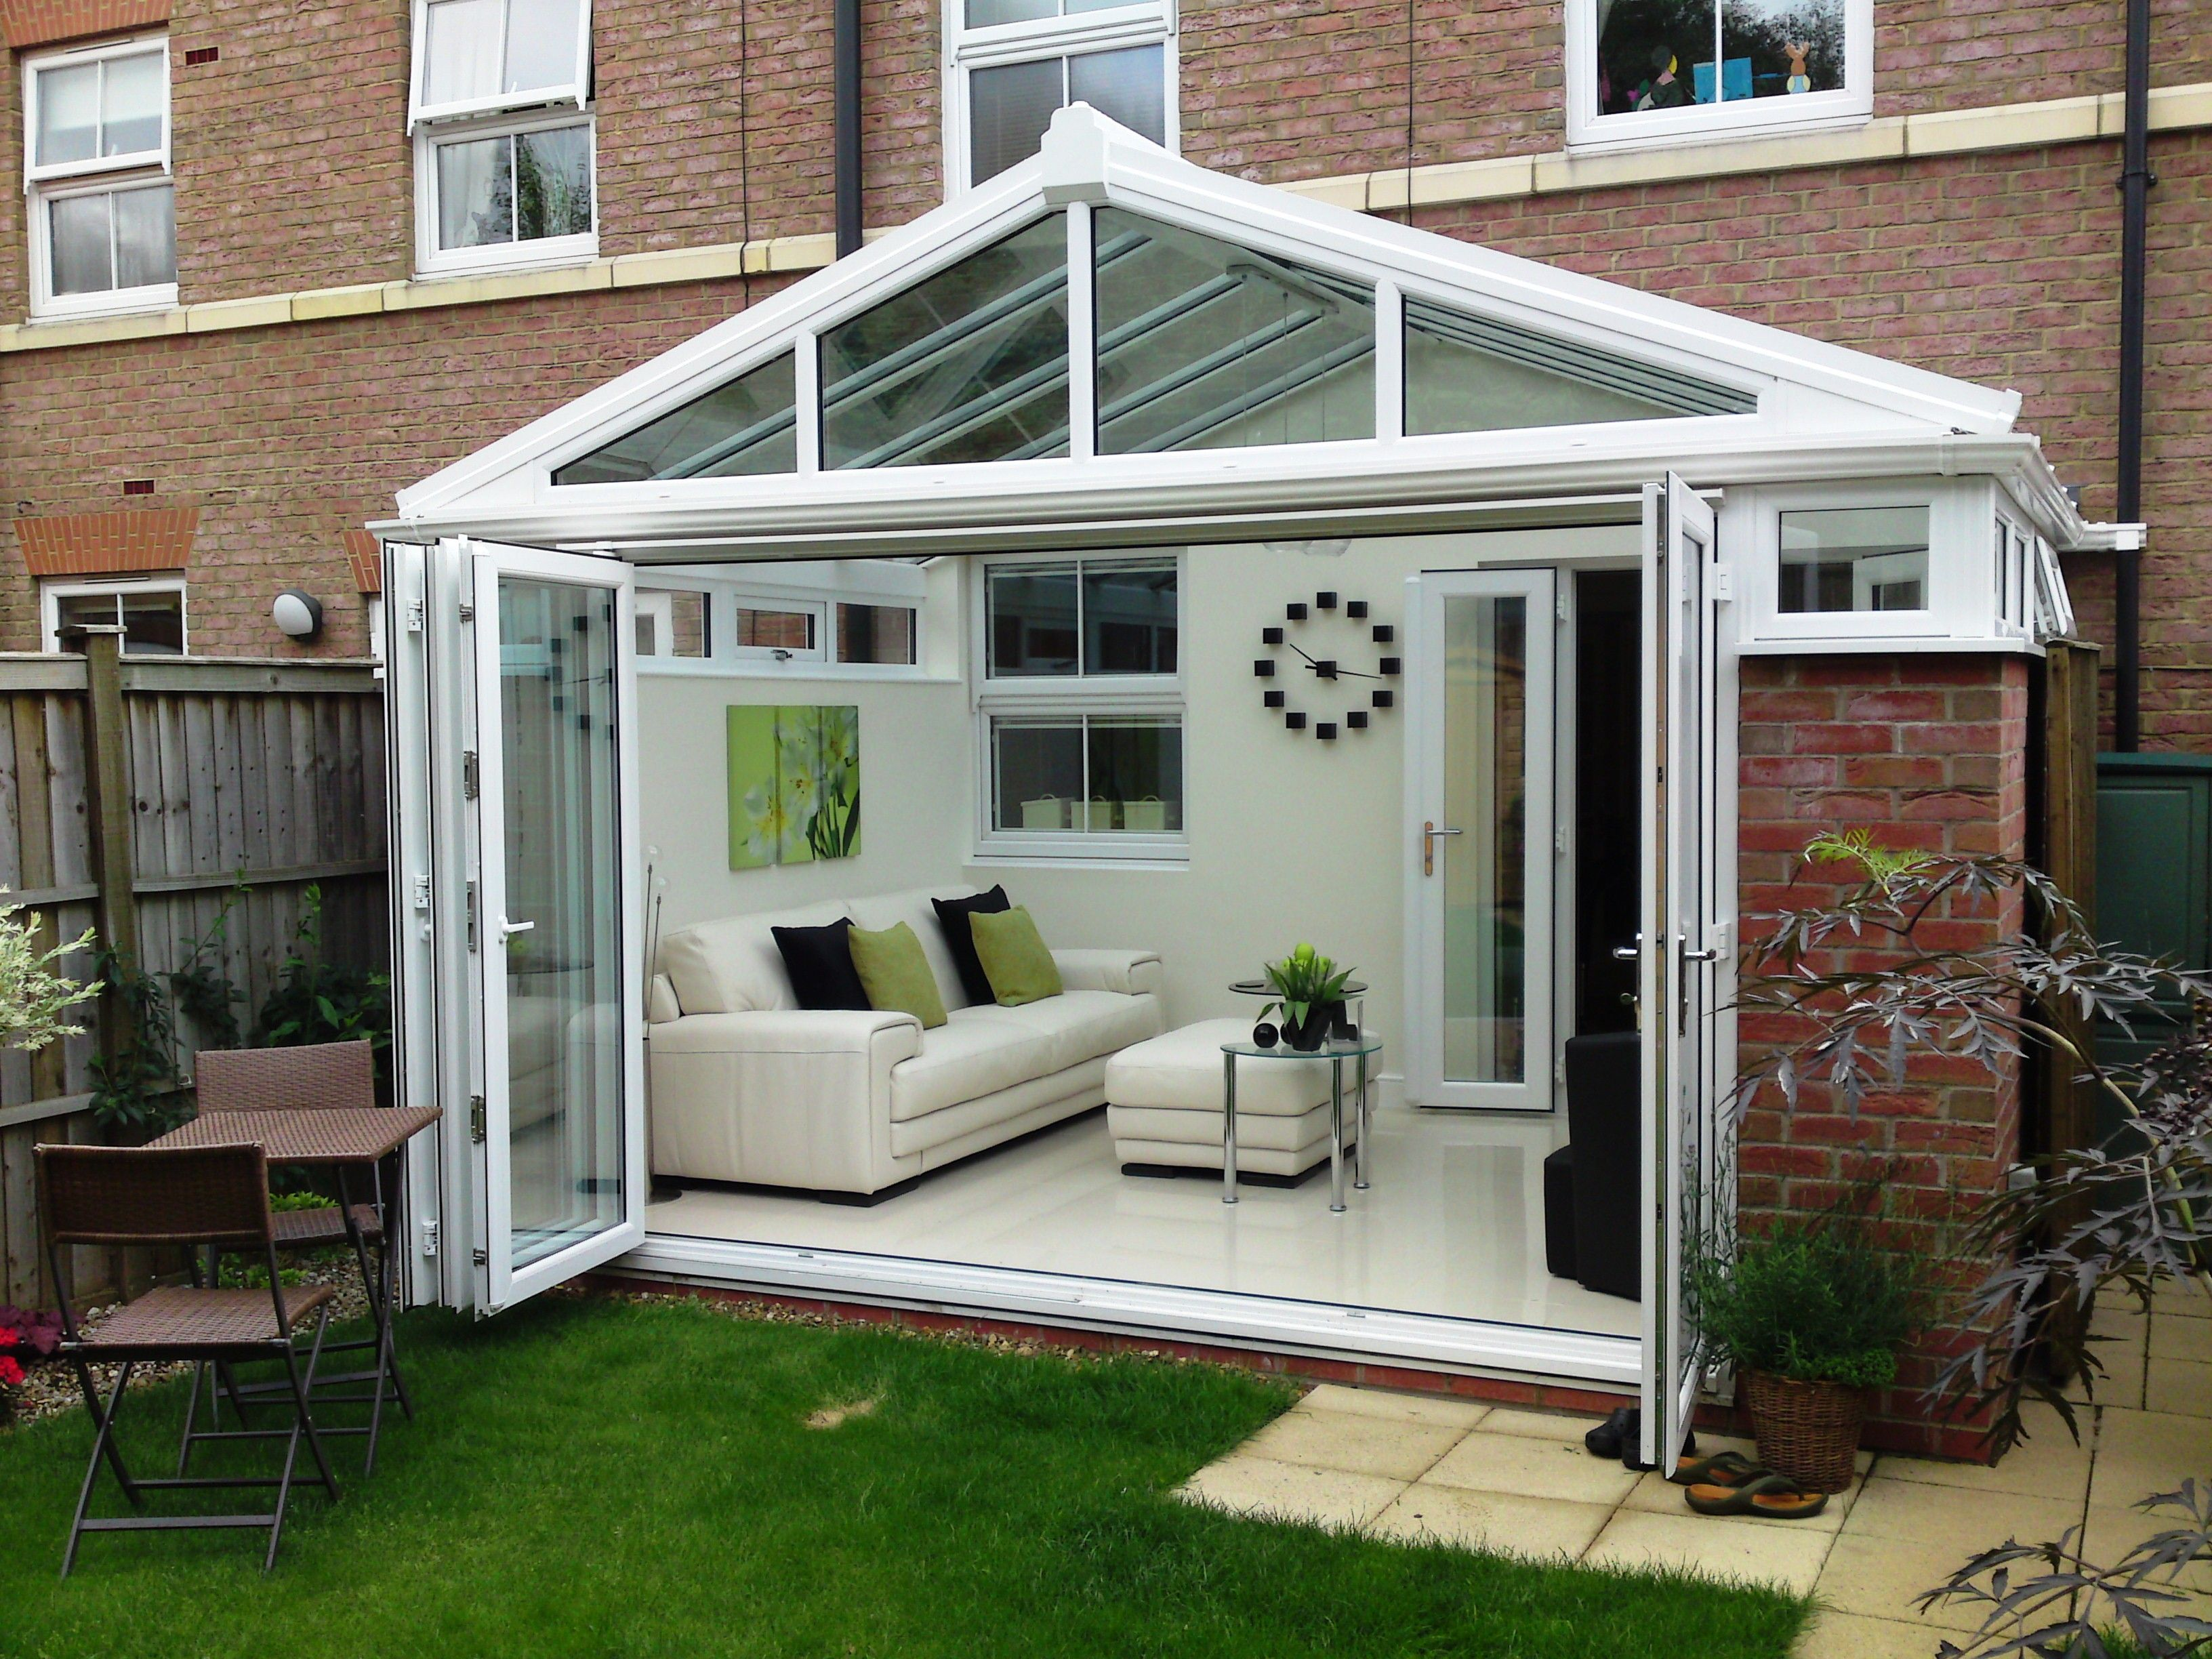 Pin by Alison White on Playroom plans | Pinterest | Bi fold doors ...